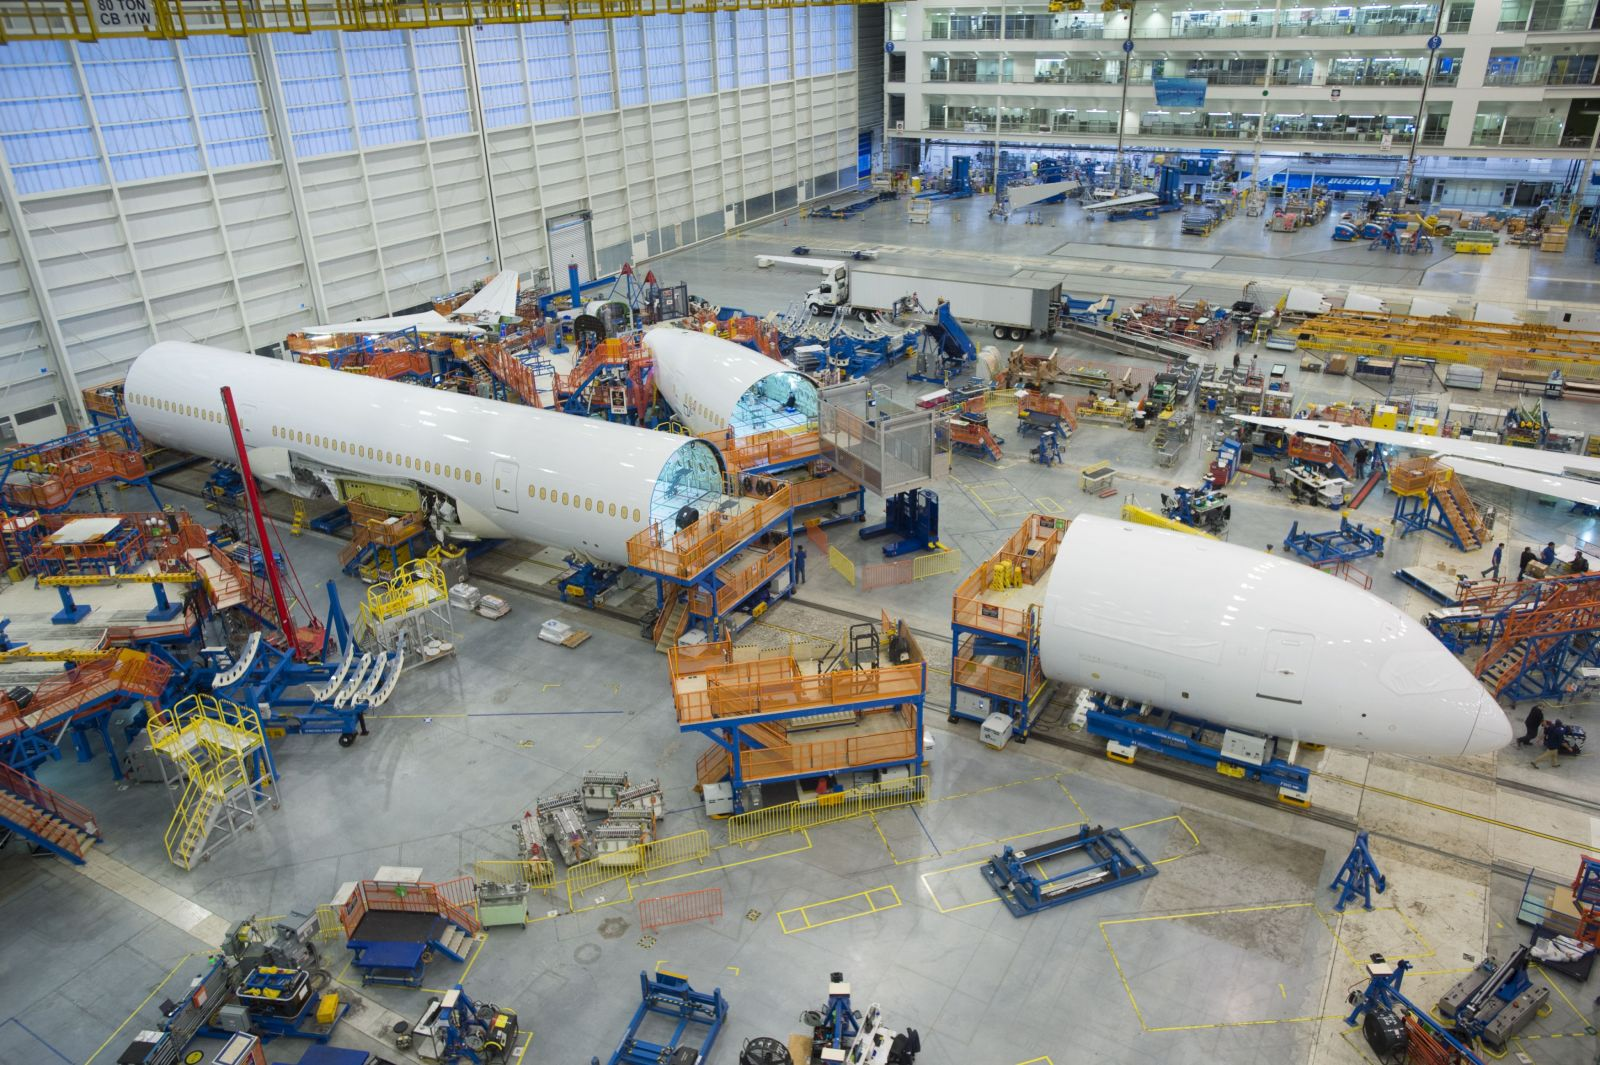 Final assembly work has started on the 787-10 Dreamliner one week after parts of the jet were rolled into the final assembly building at Boeing S.C. in North Charleston. (Photo/Boeing)